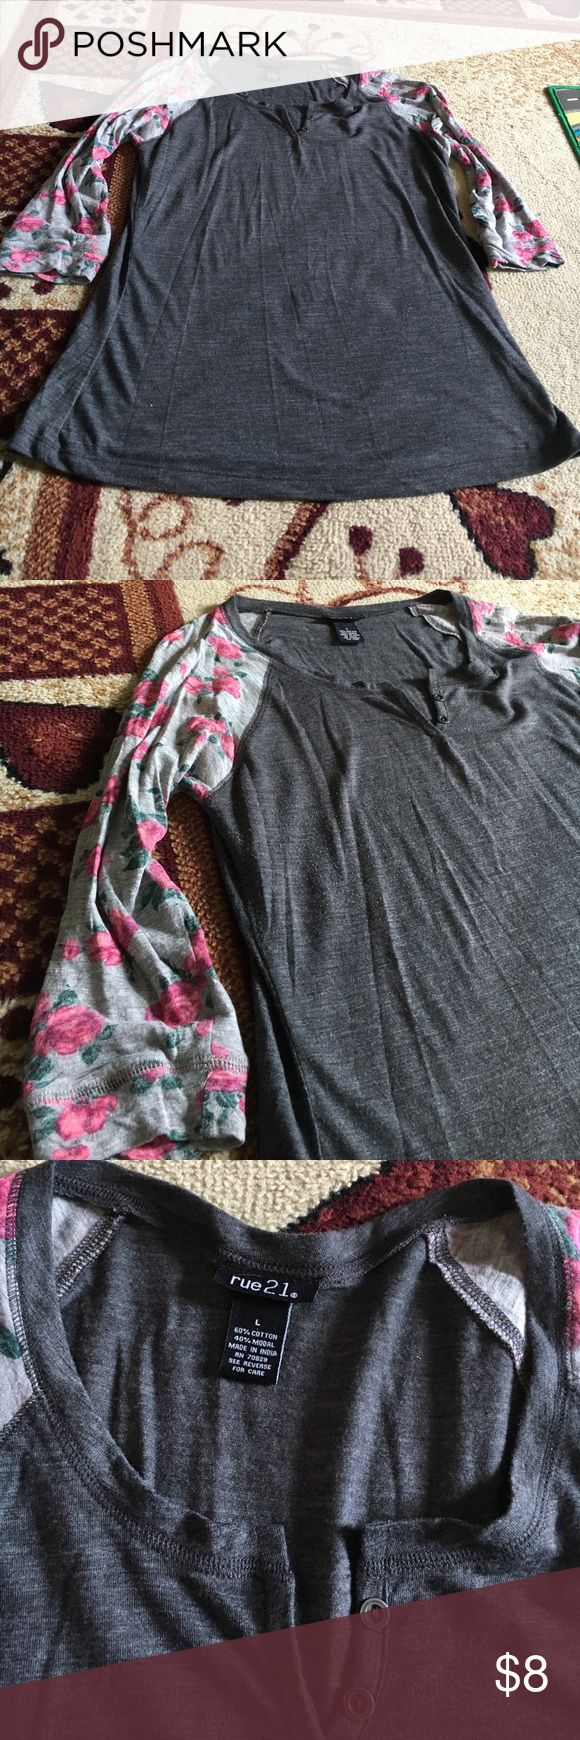 Half sleeve shirt Rue 21 1/2 sleeve rose printed shirt size large the shirts gray with light gray sleeves with pink roses great condition very comfortable shirt Rue 21 Tops